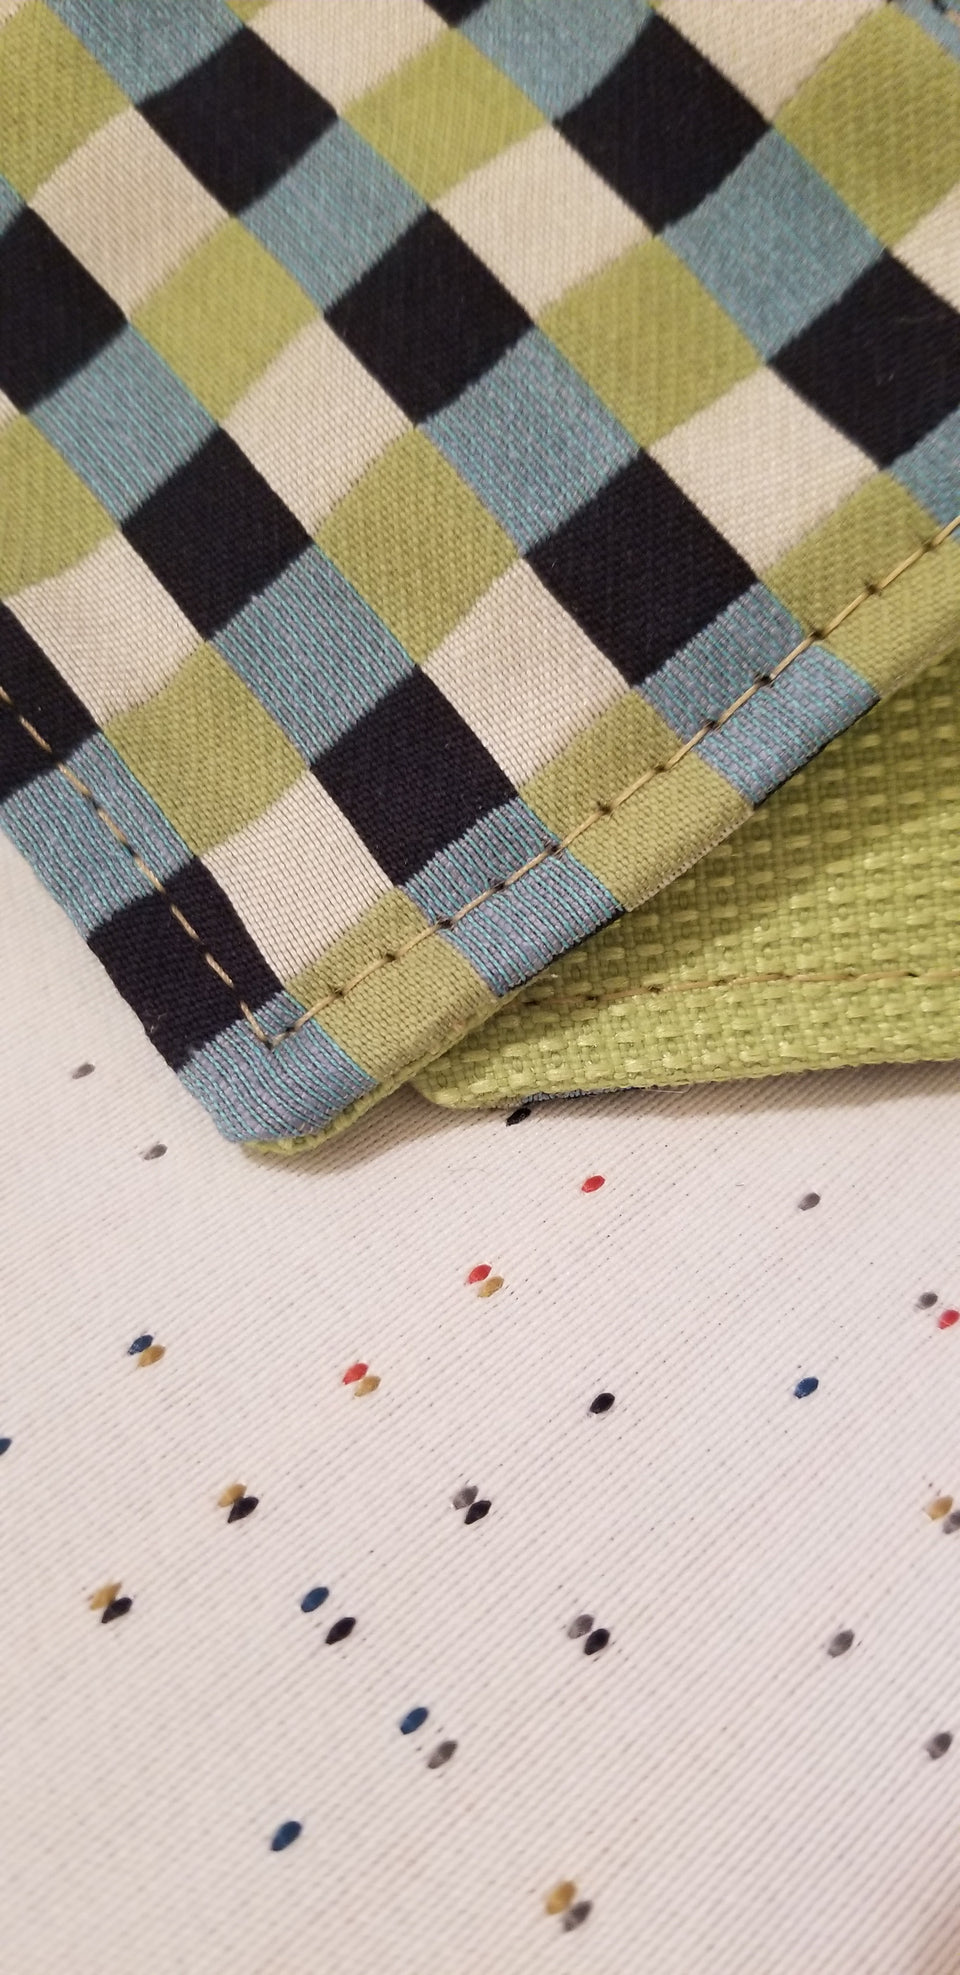 Chuck black, white, lime green, and turquoise gingham check patterned coasters detail view.